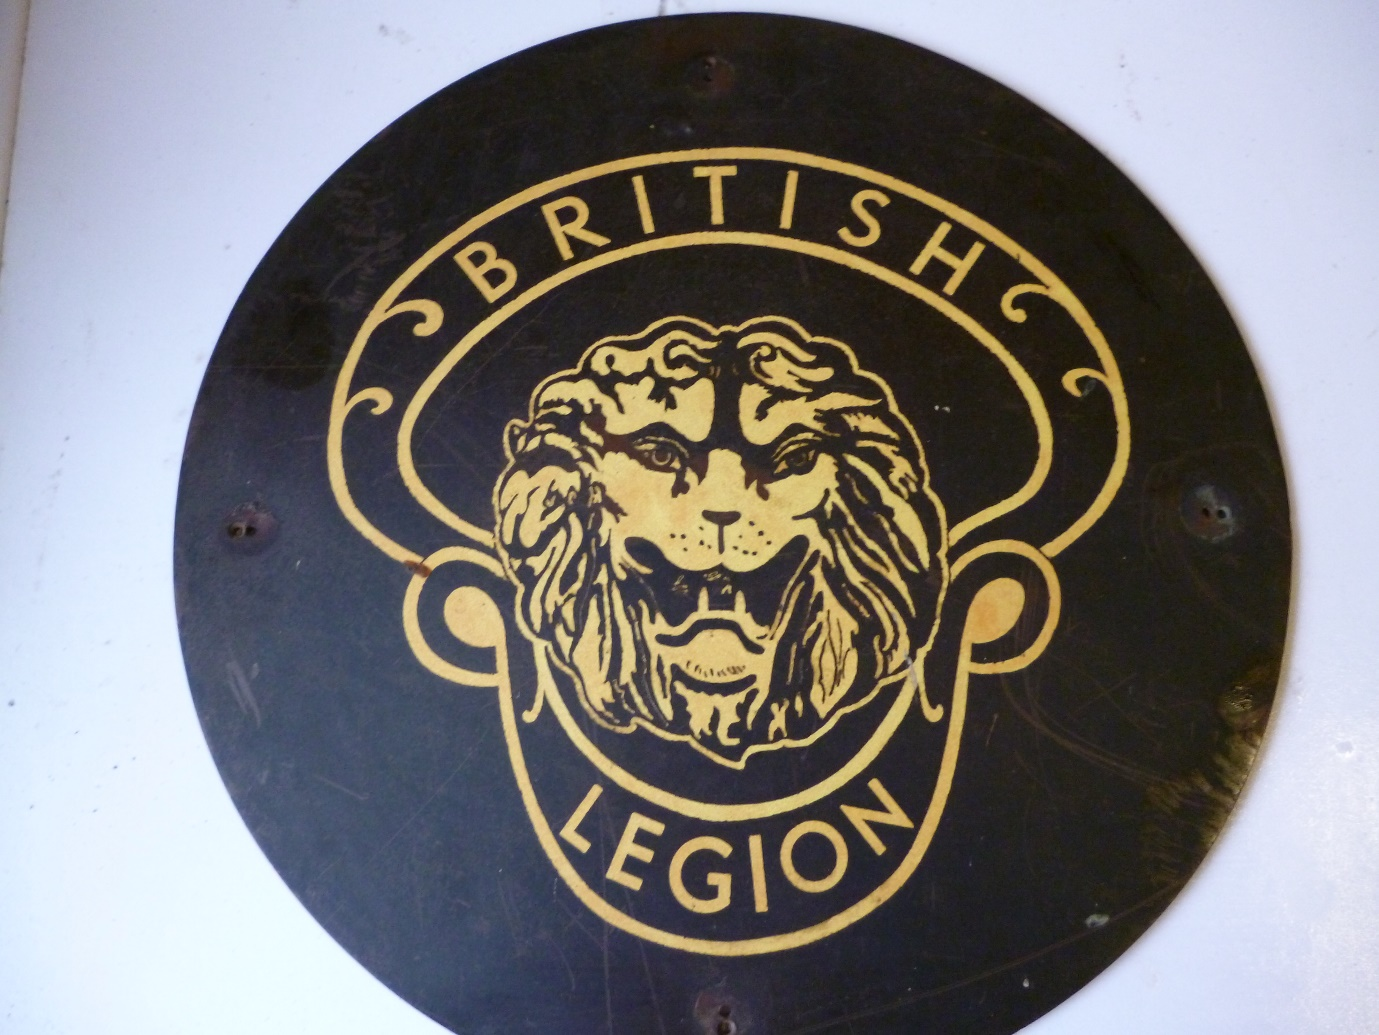 The headstone insignia from the original plaque. Image kindly supplied by David Evans.